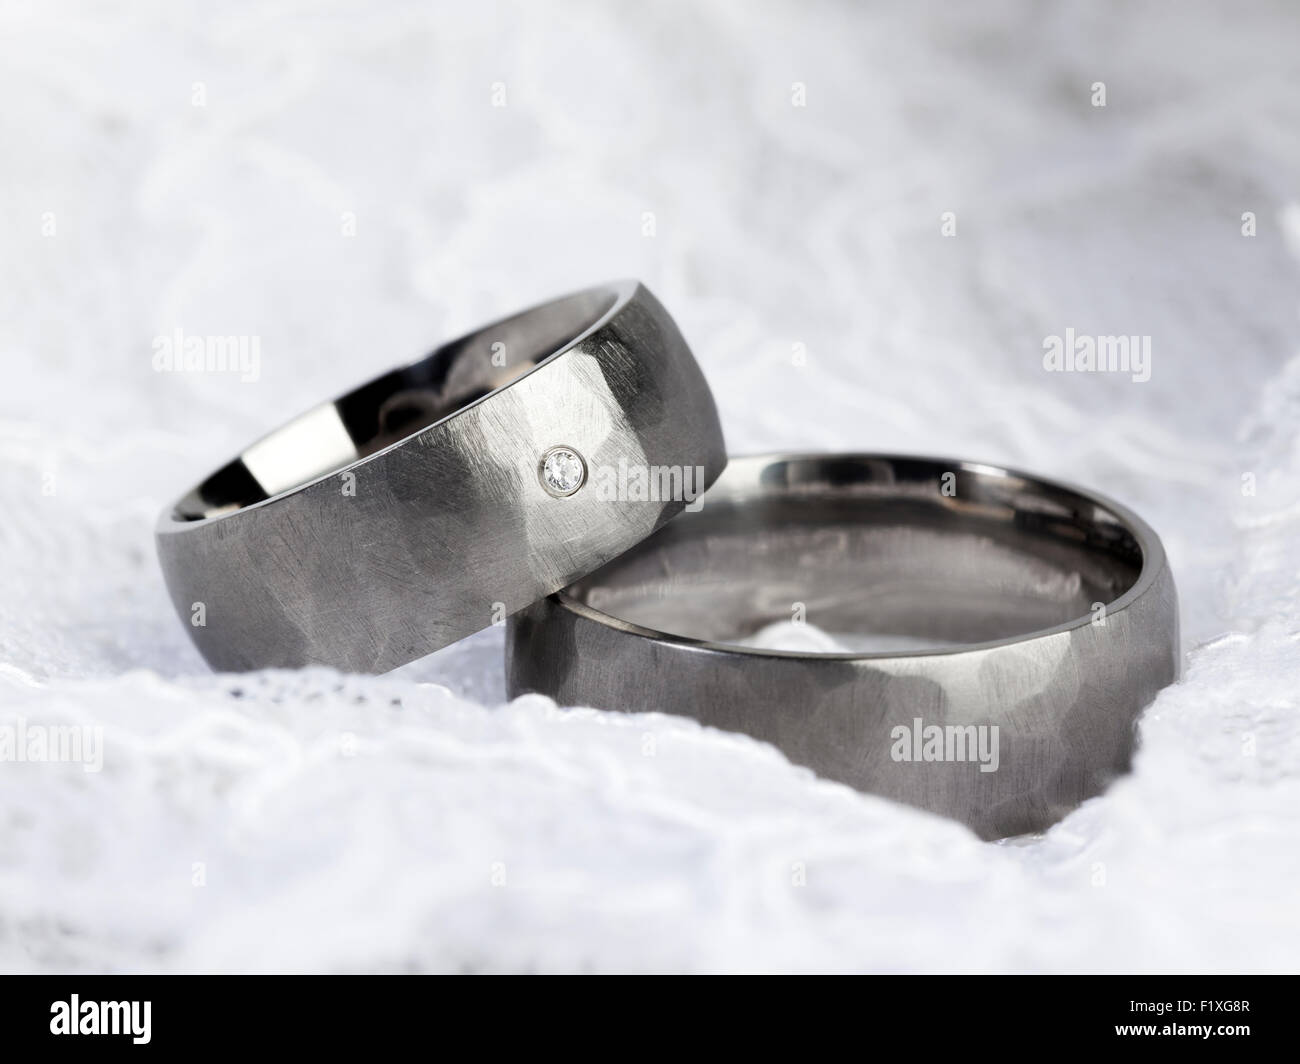 Silver or platinum wedding rings on white lace - Stock Image